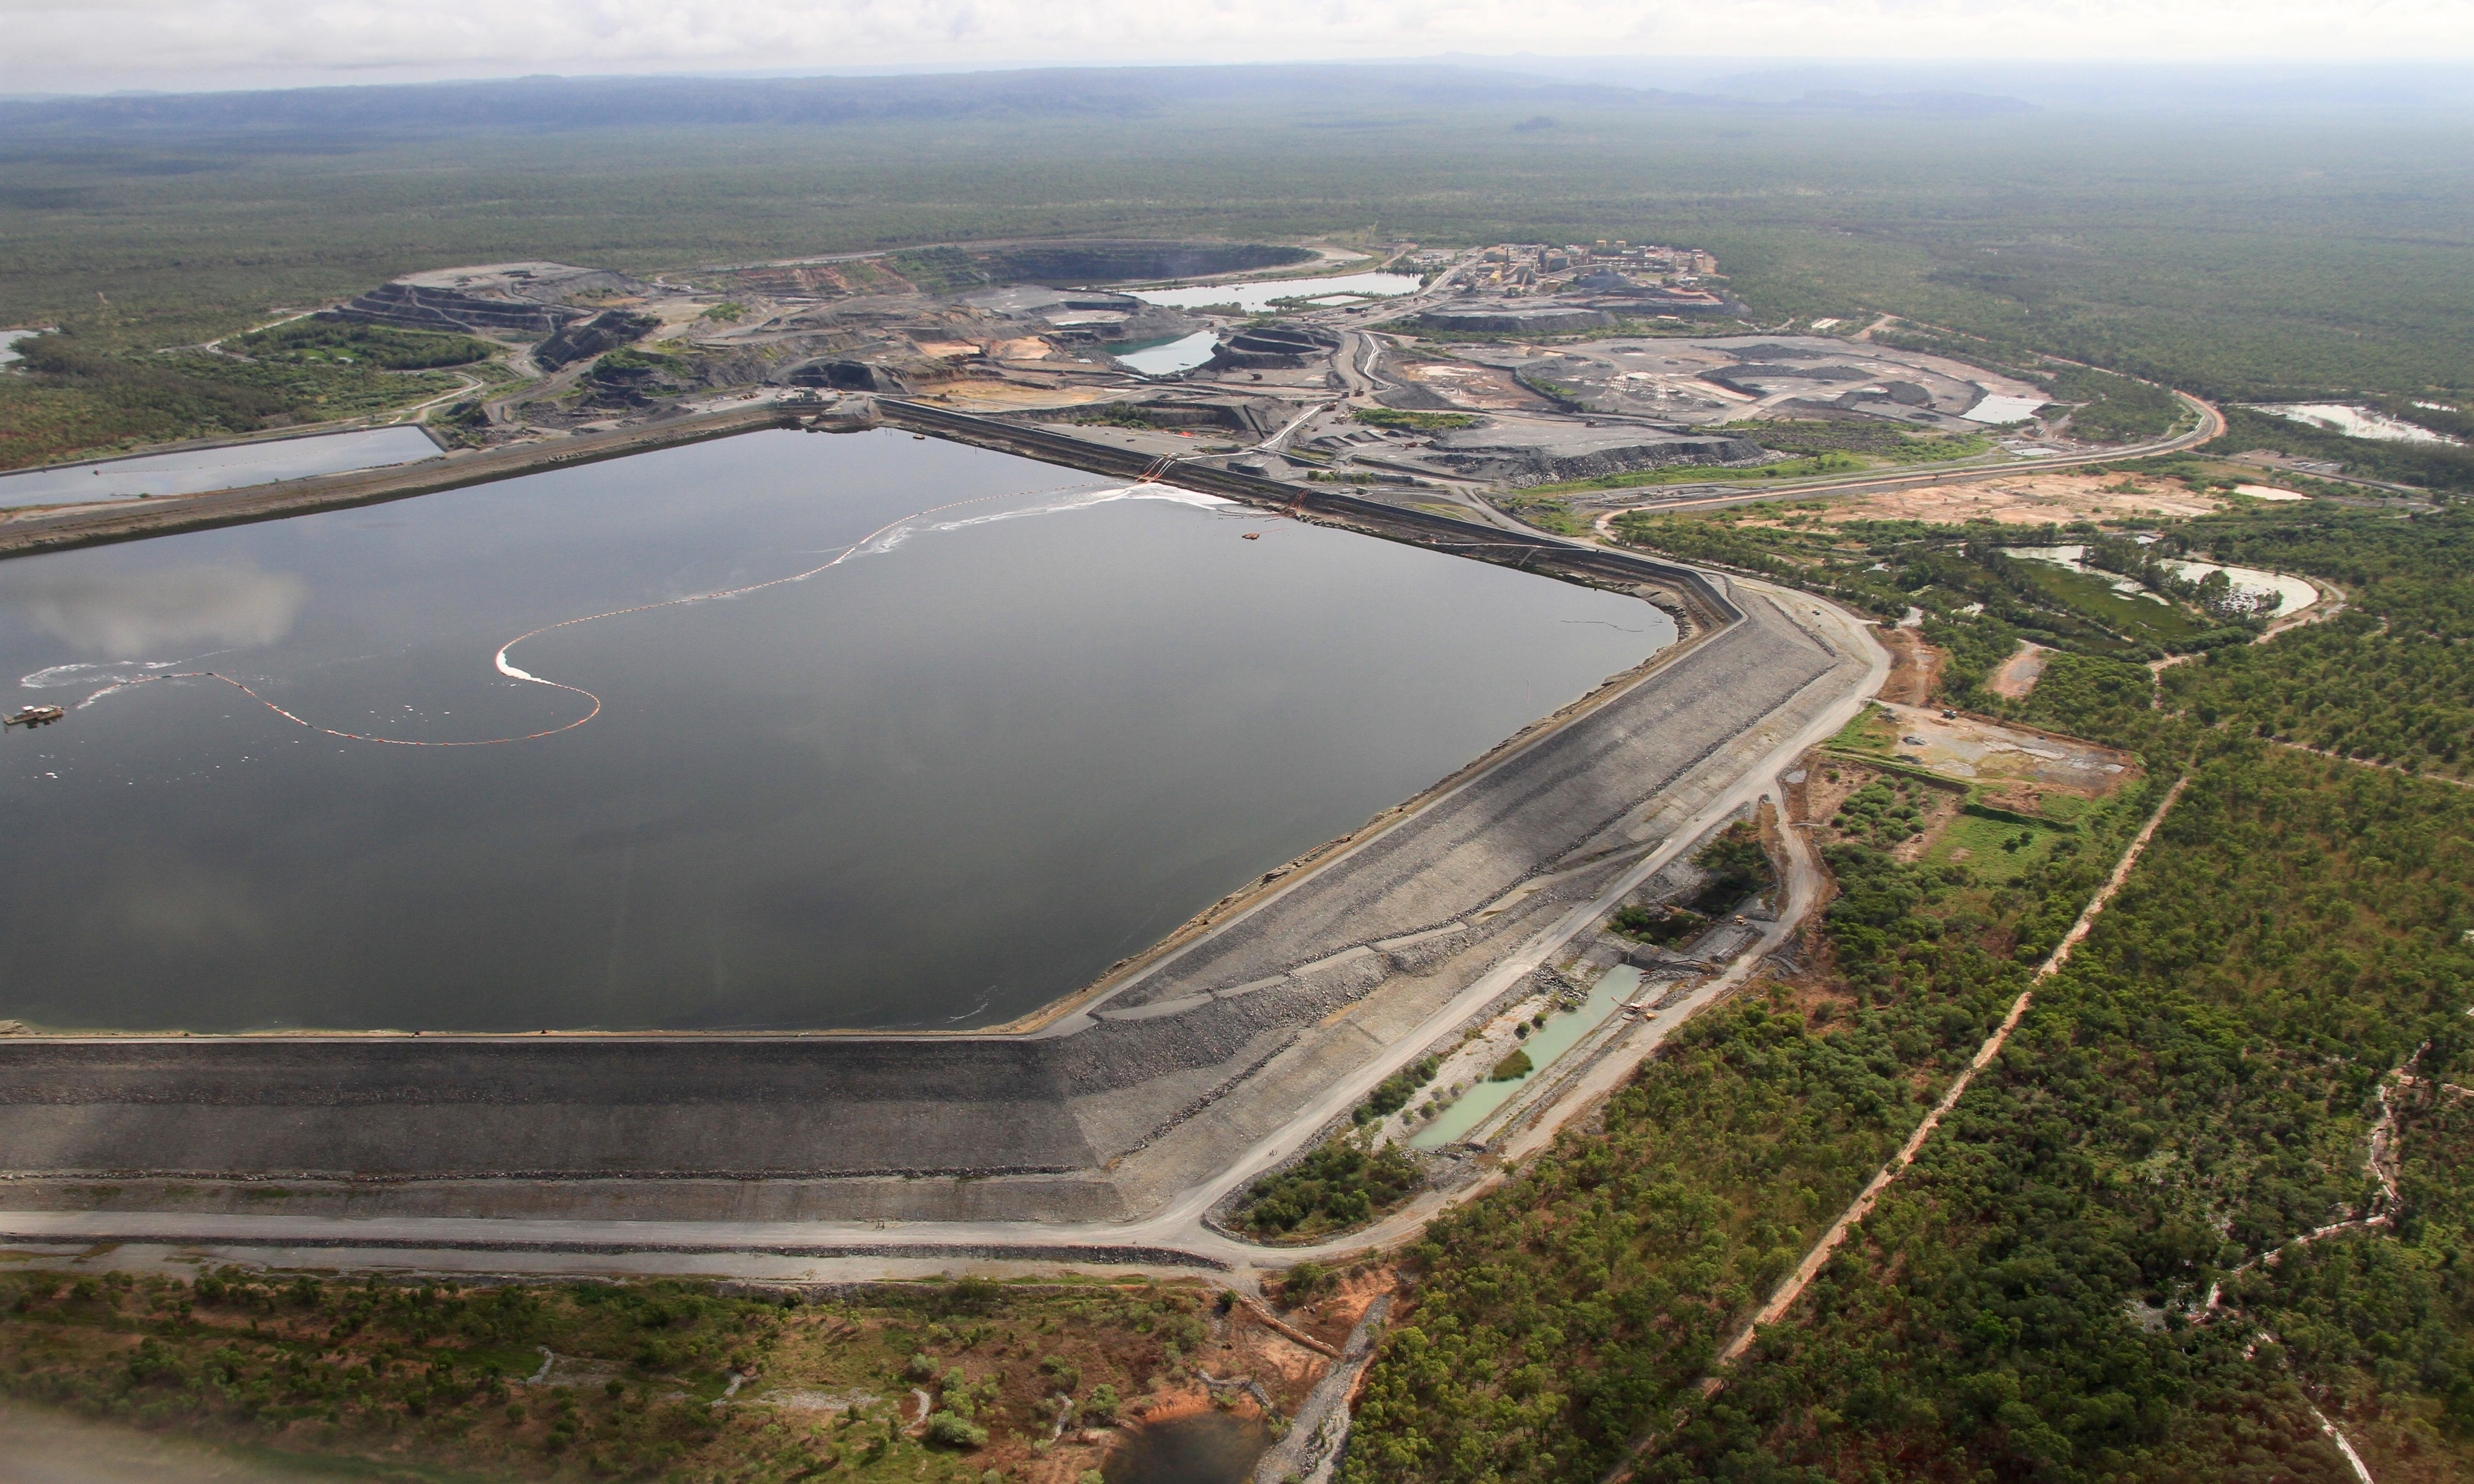 Rio Tinto's plan to clean up Ranger uranium mine in doubt after hedge fund objects